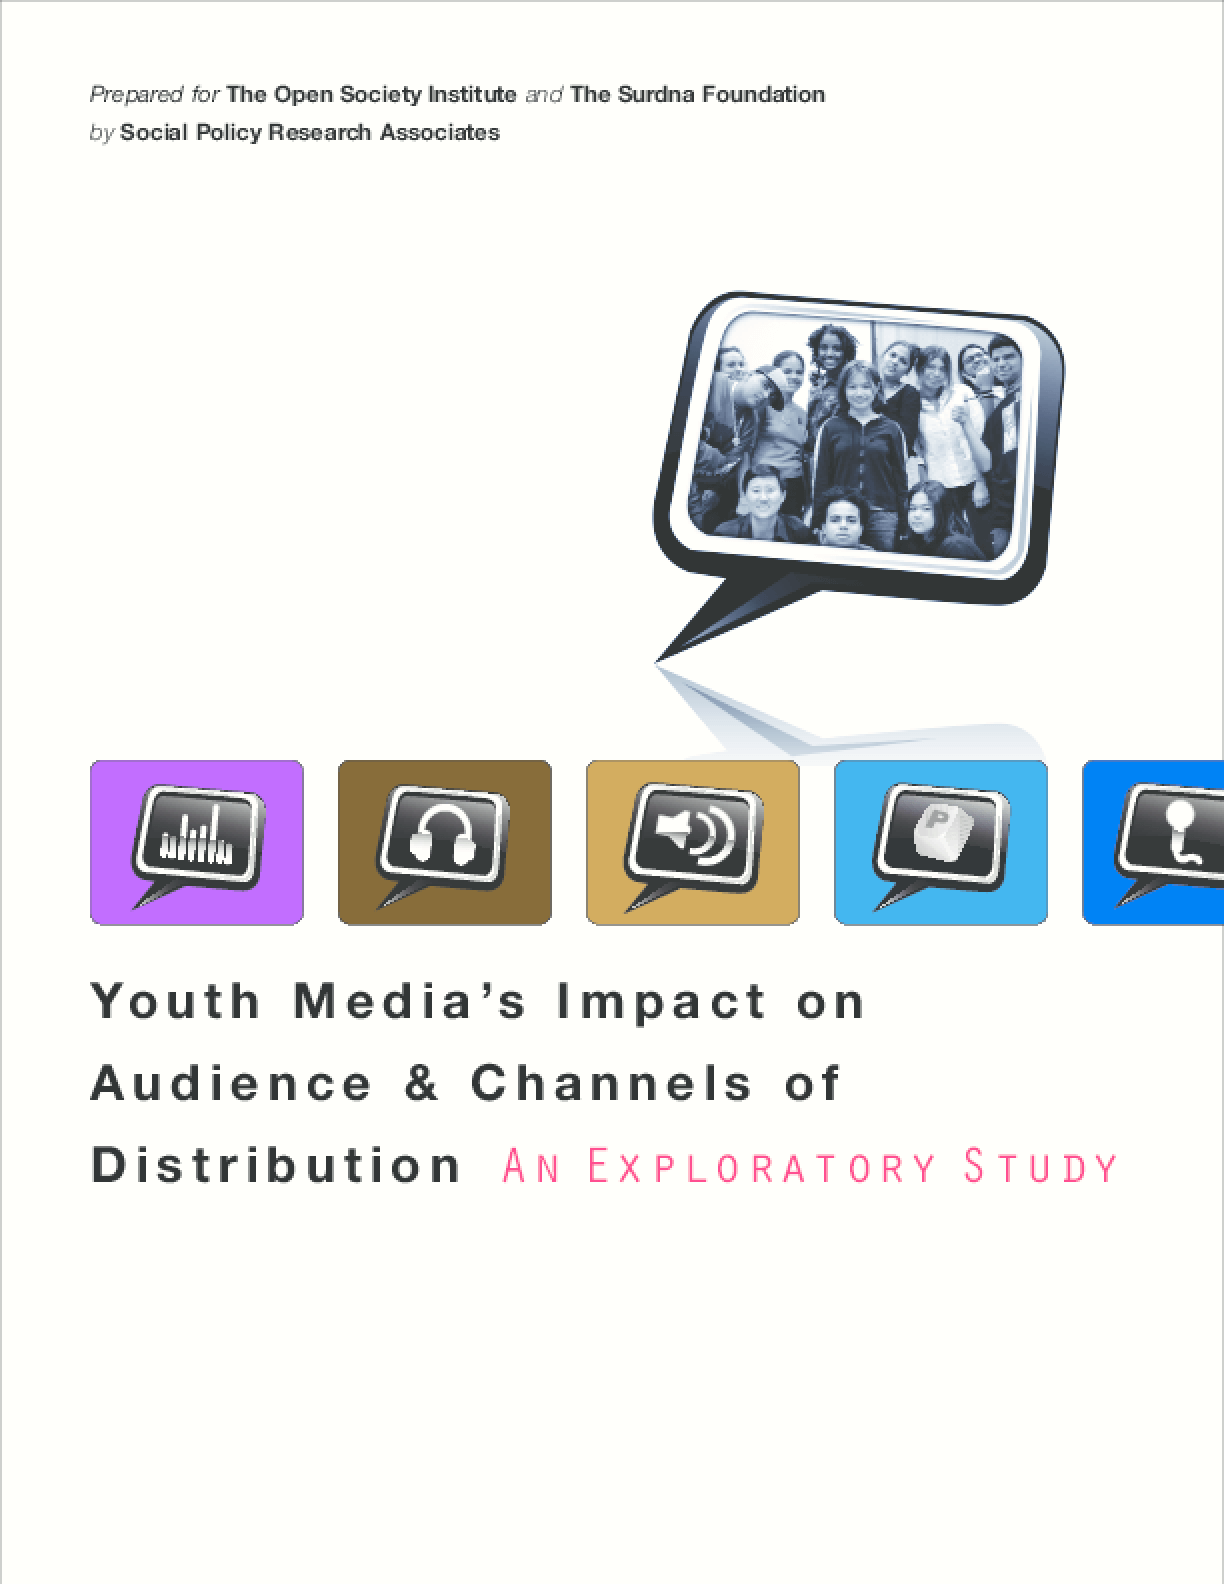 Youth Media's Impact on Audience and Channels of Distribution